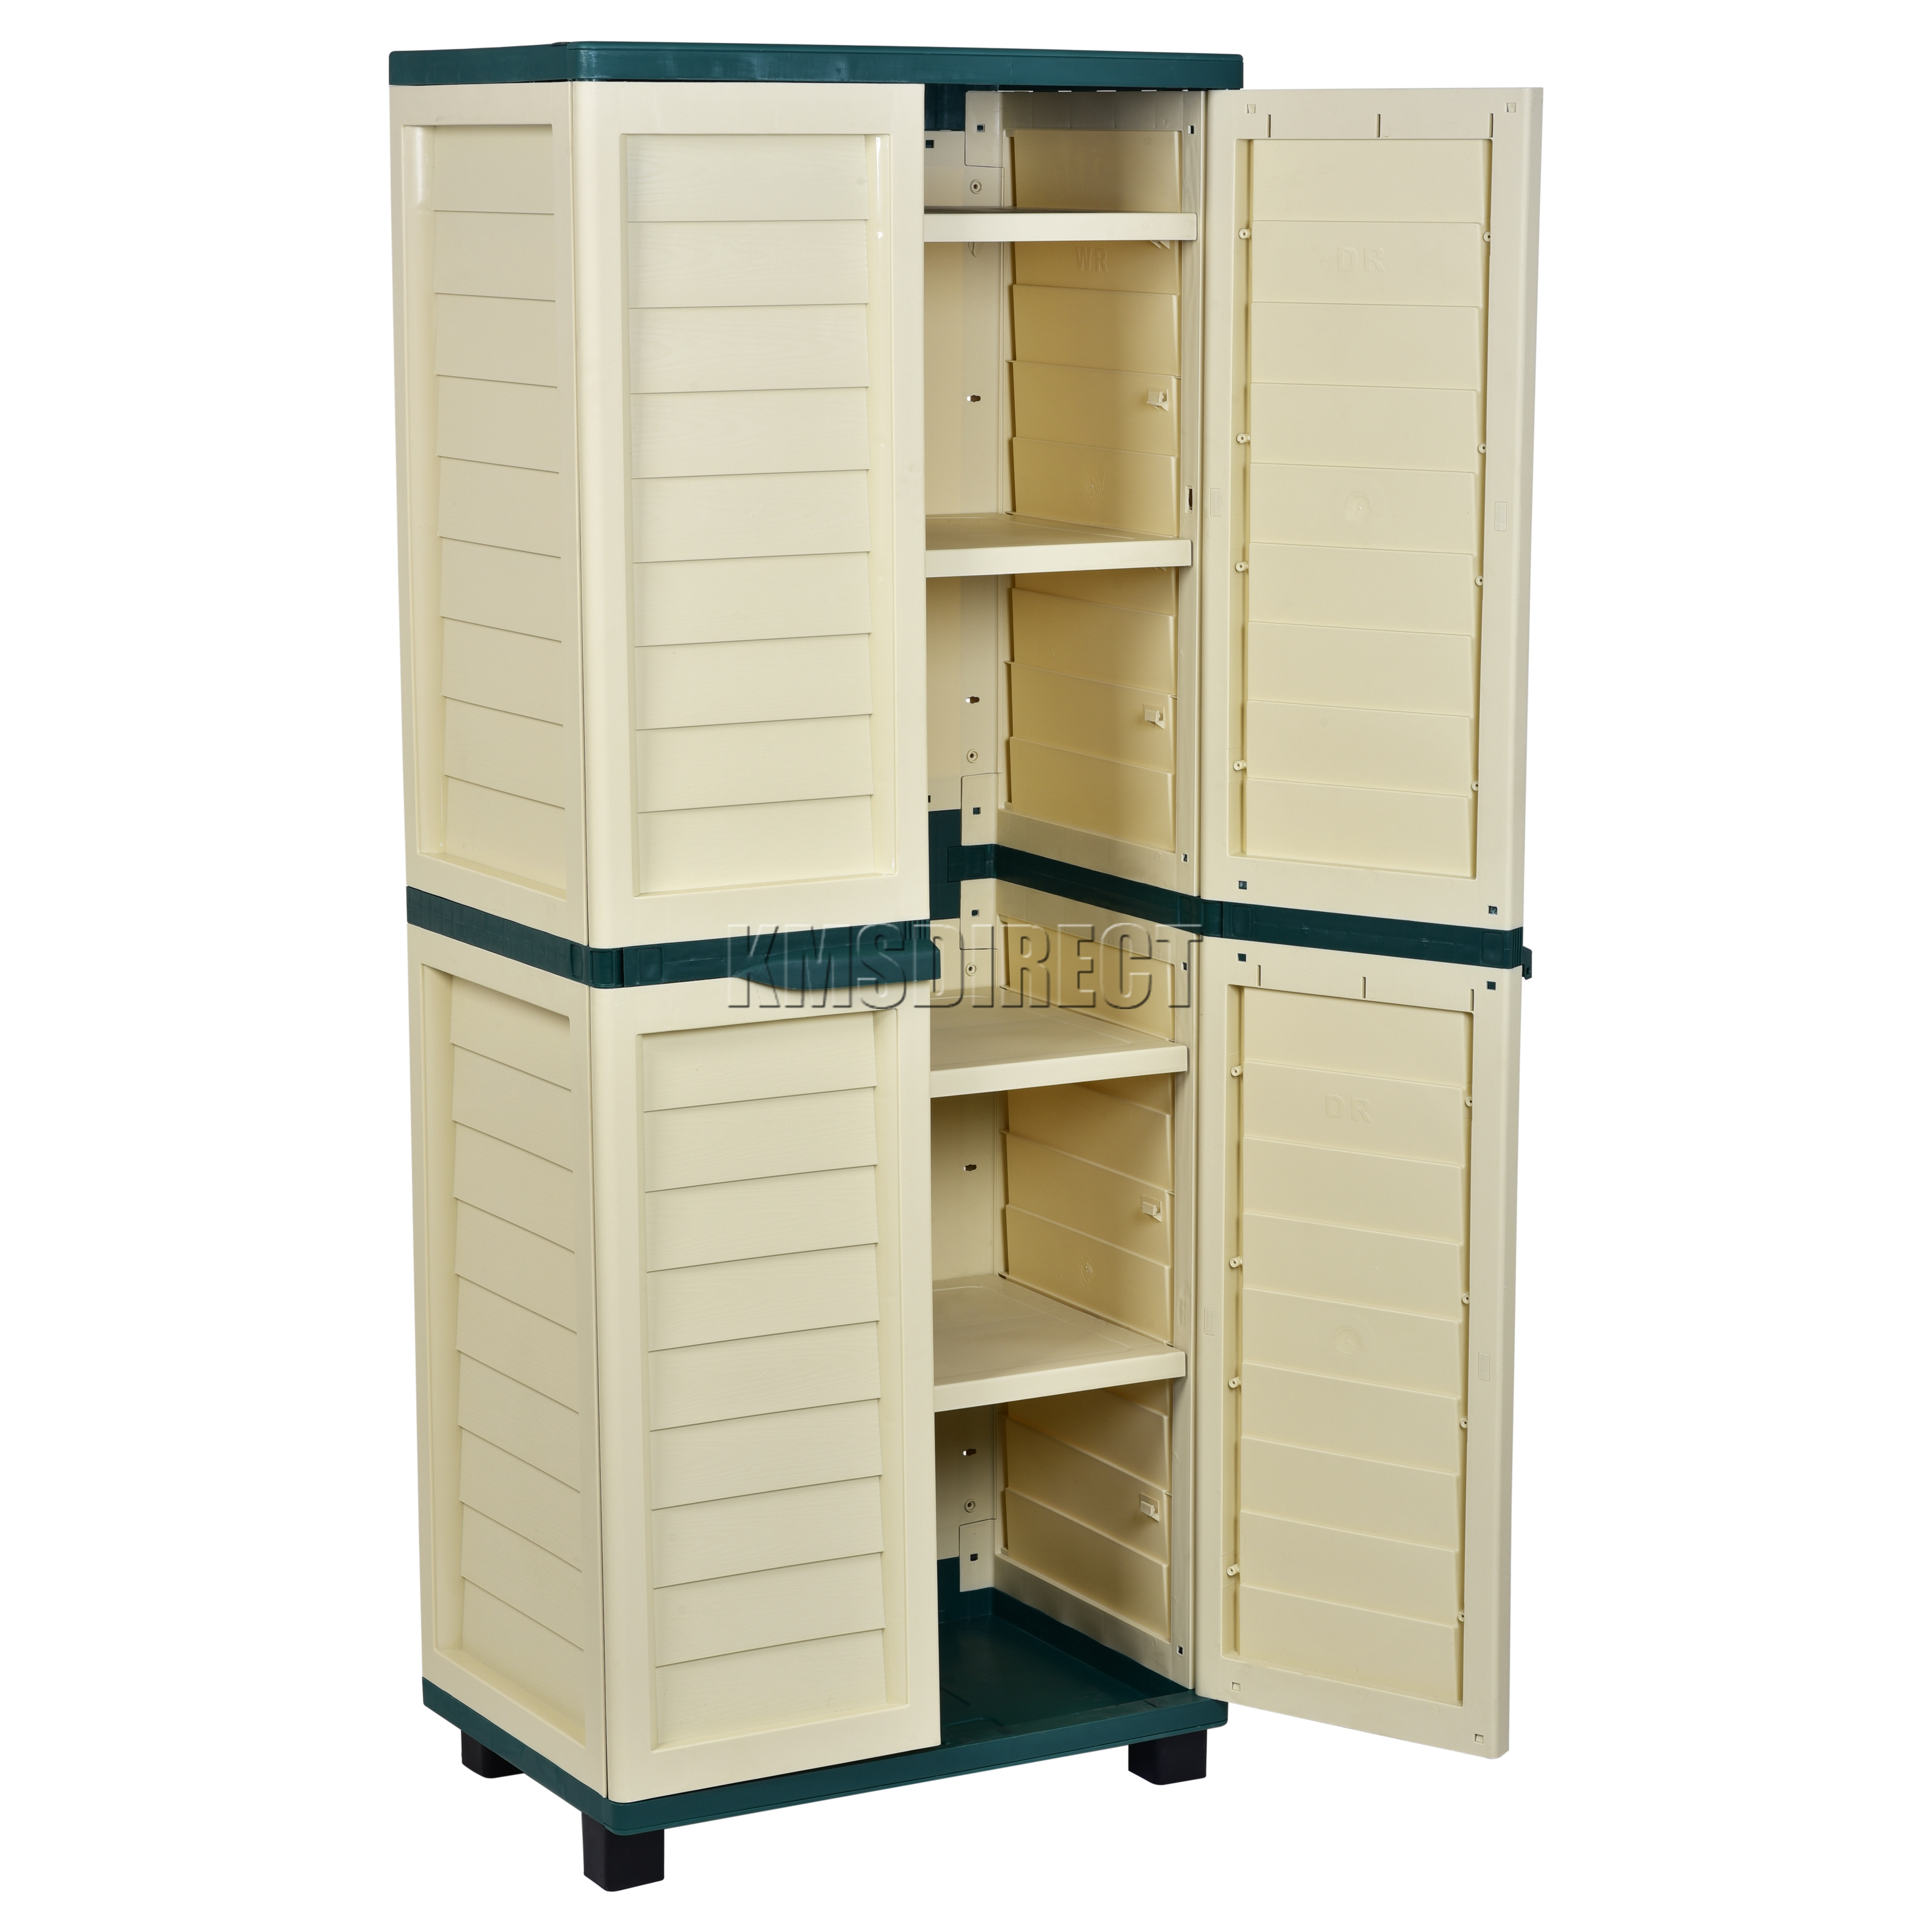 Delightful Sentinel Starplast Outdoor Plastic Garden Utility Cabinet With 4 Shelves  Storage Garage